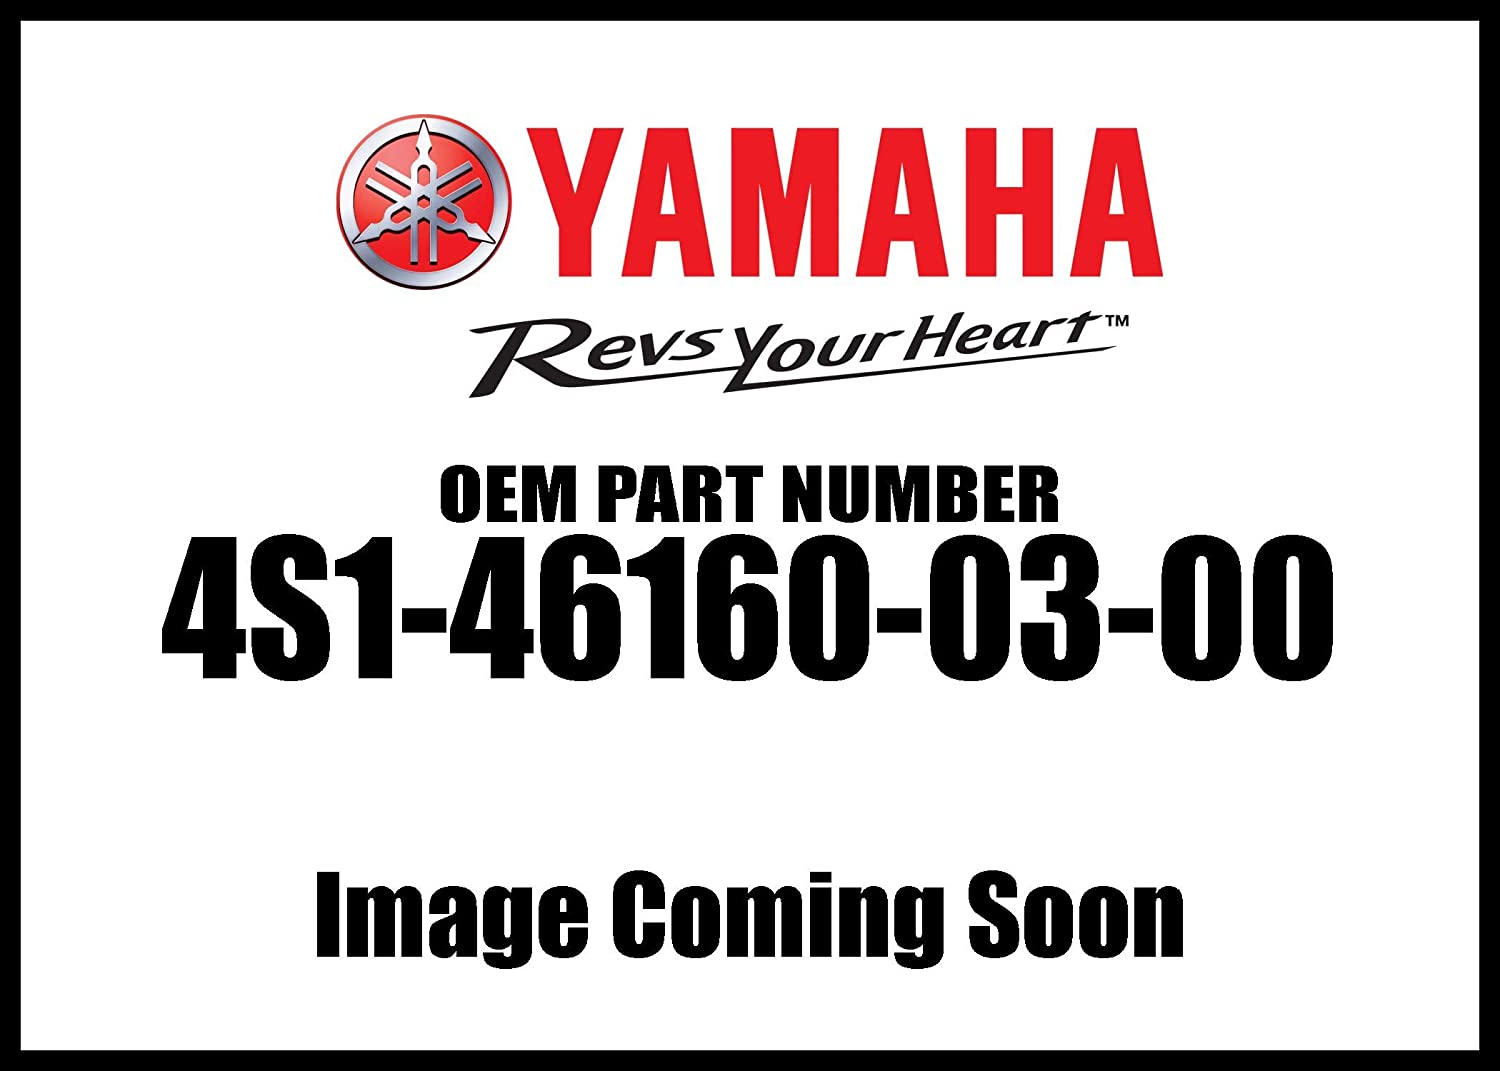 New Yamaha OEM 4S1-46160-03-00 FRONT AXLE GEAR CAS 4S1461600300